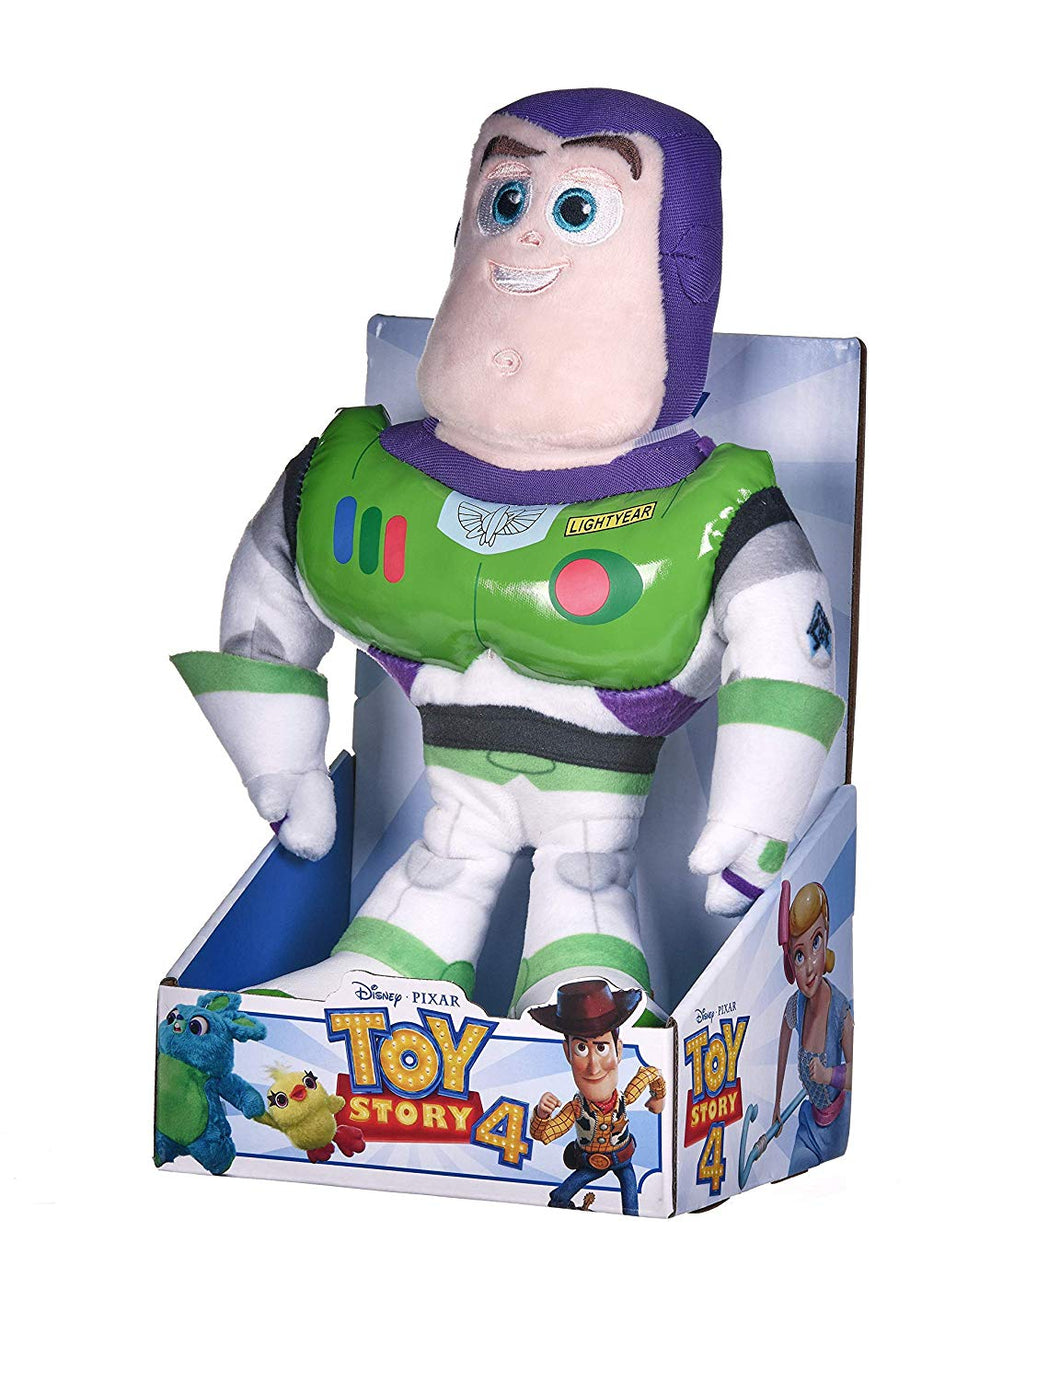 Disney Pixar Toy Story 4 Buzz Lightyear Soft Doll in Gift Box